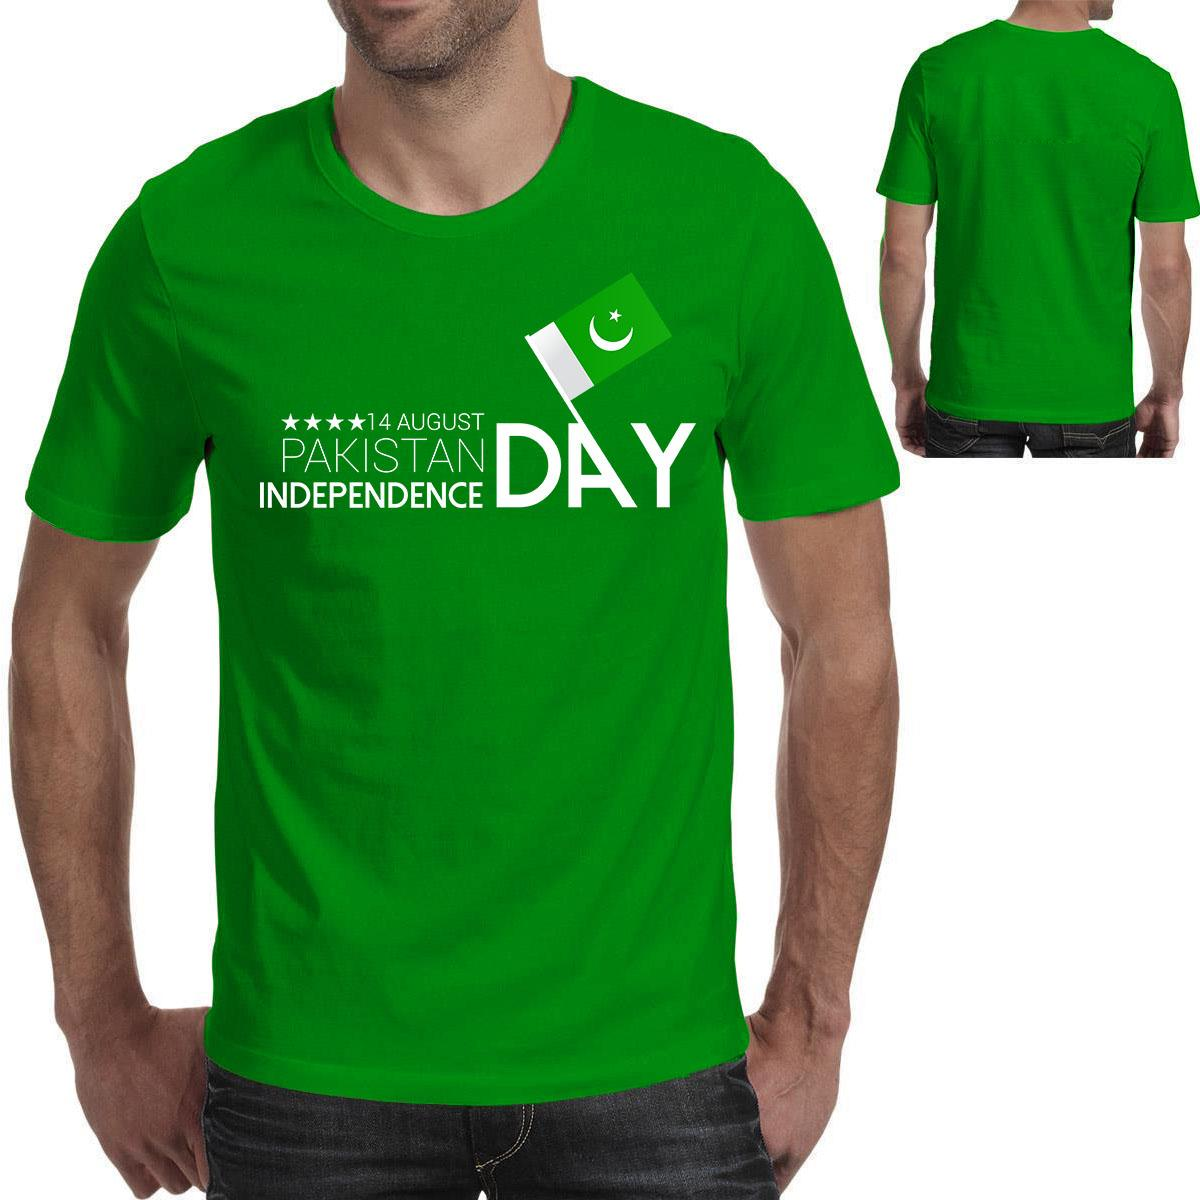 14th august day t shirt Pakistans t shirt independence day t shirt happy  independence day t shirt for mens for womens for kids